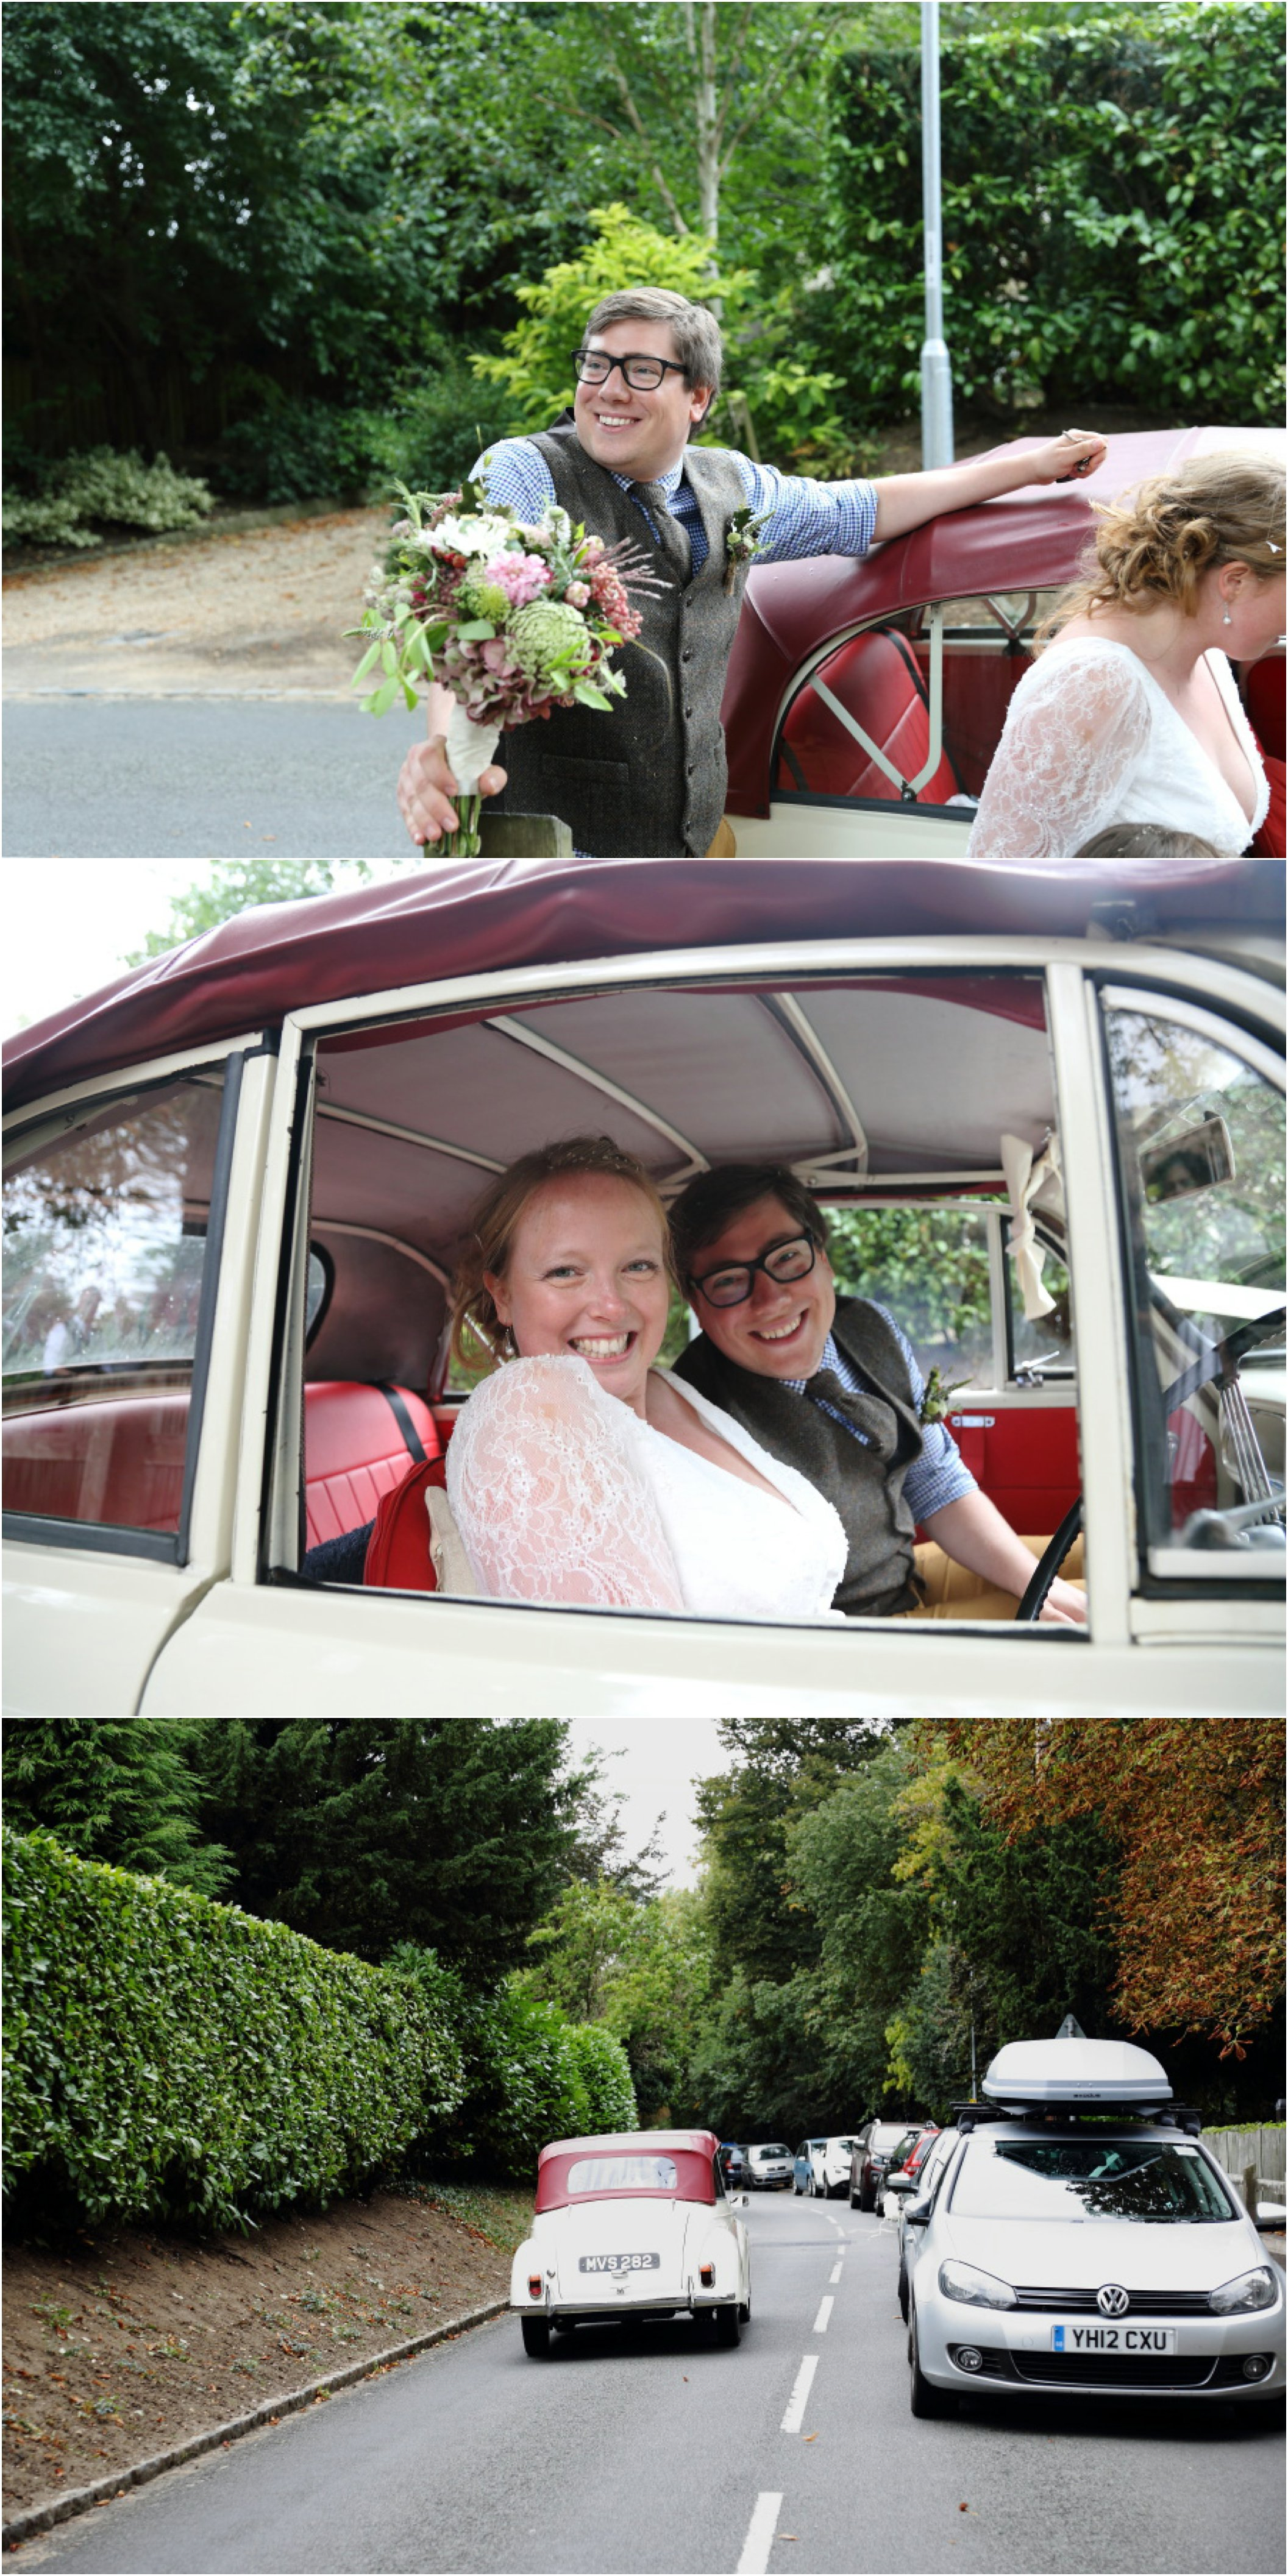 Happy groom holding bouquet, bride and groom in morris minor after relaxed wedding